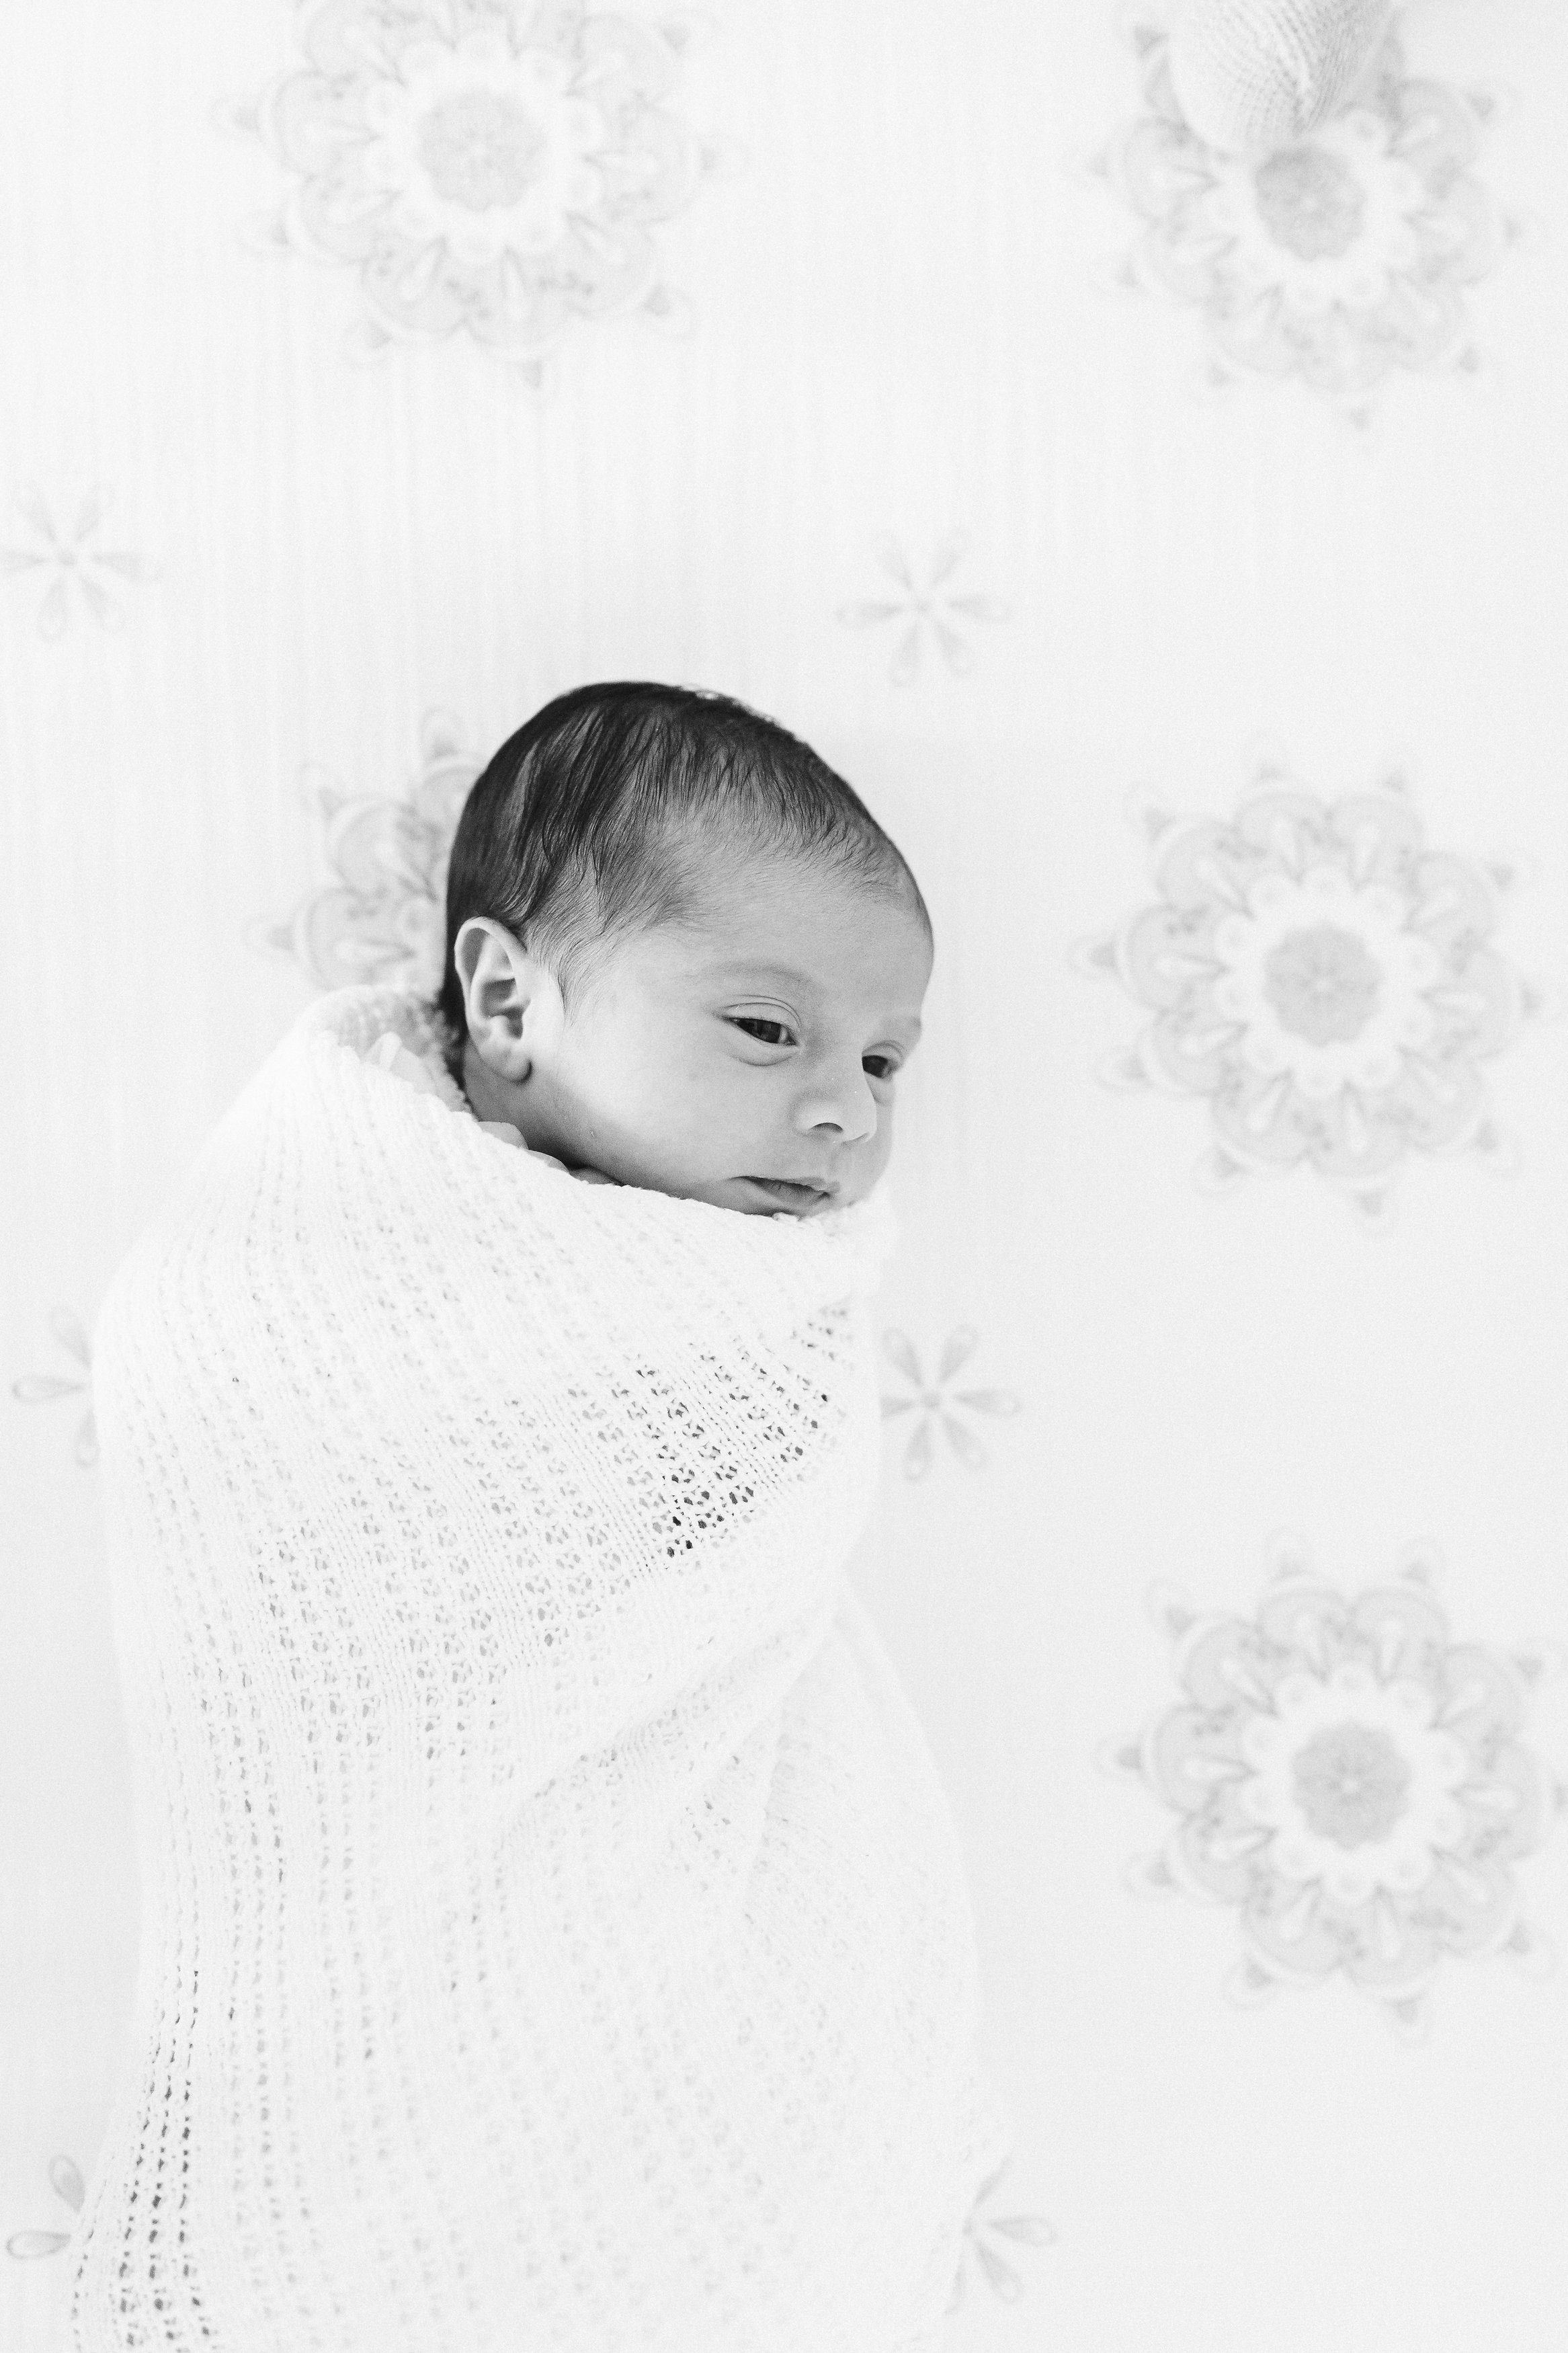 nicki-sebastian-photography-brooklyn-newborn-photographer-71.jpg